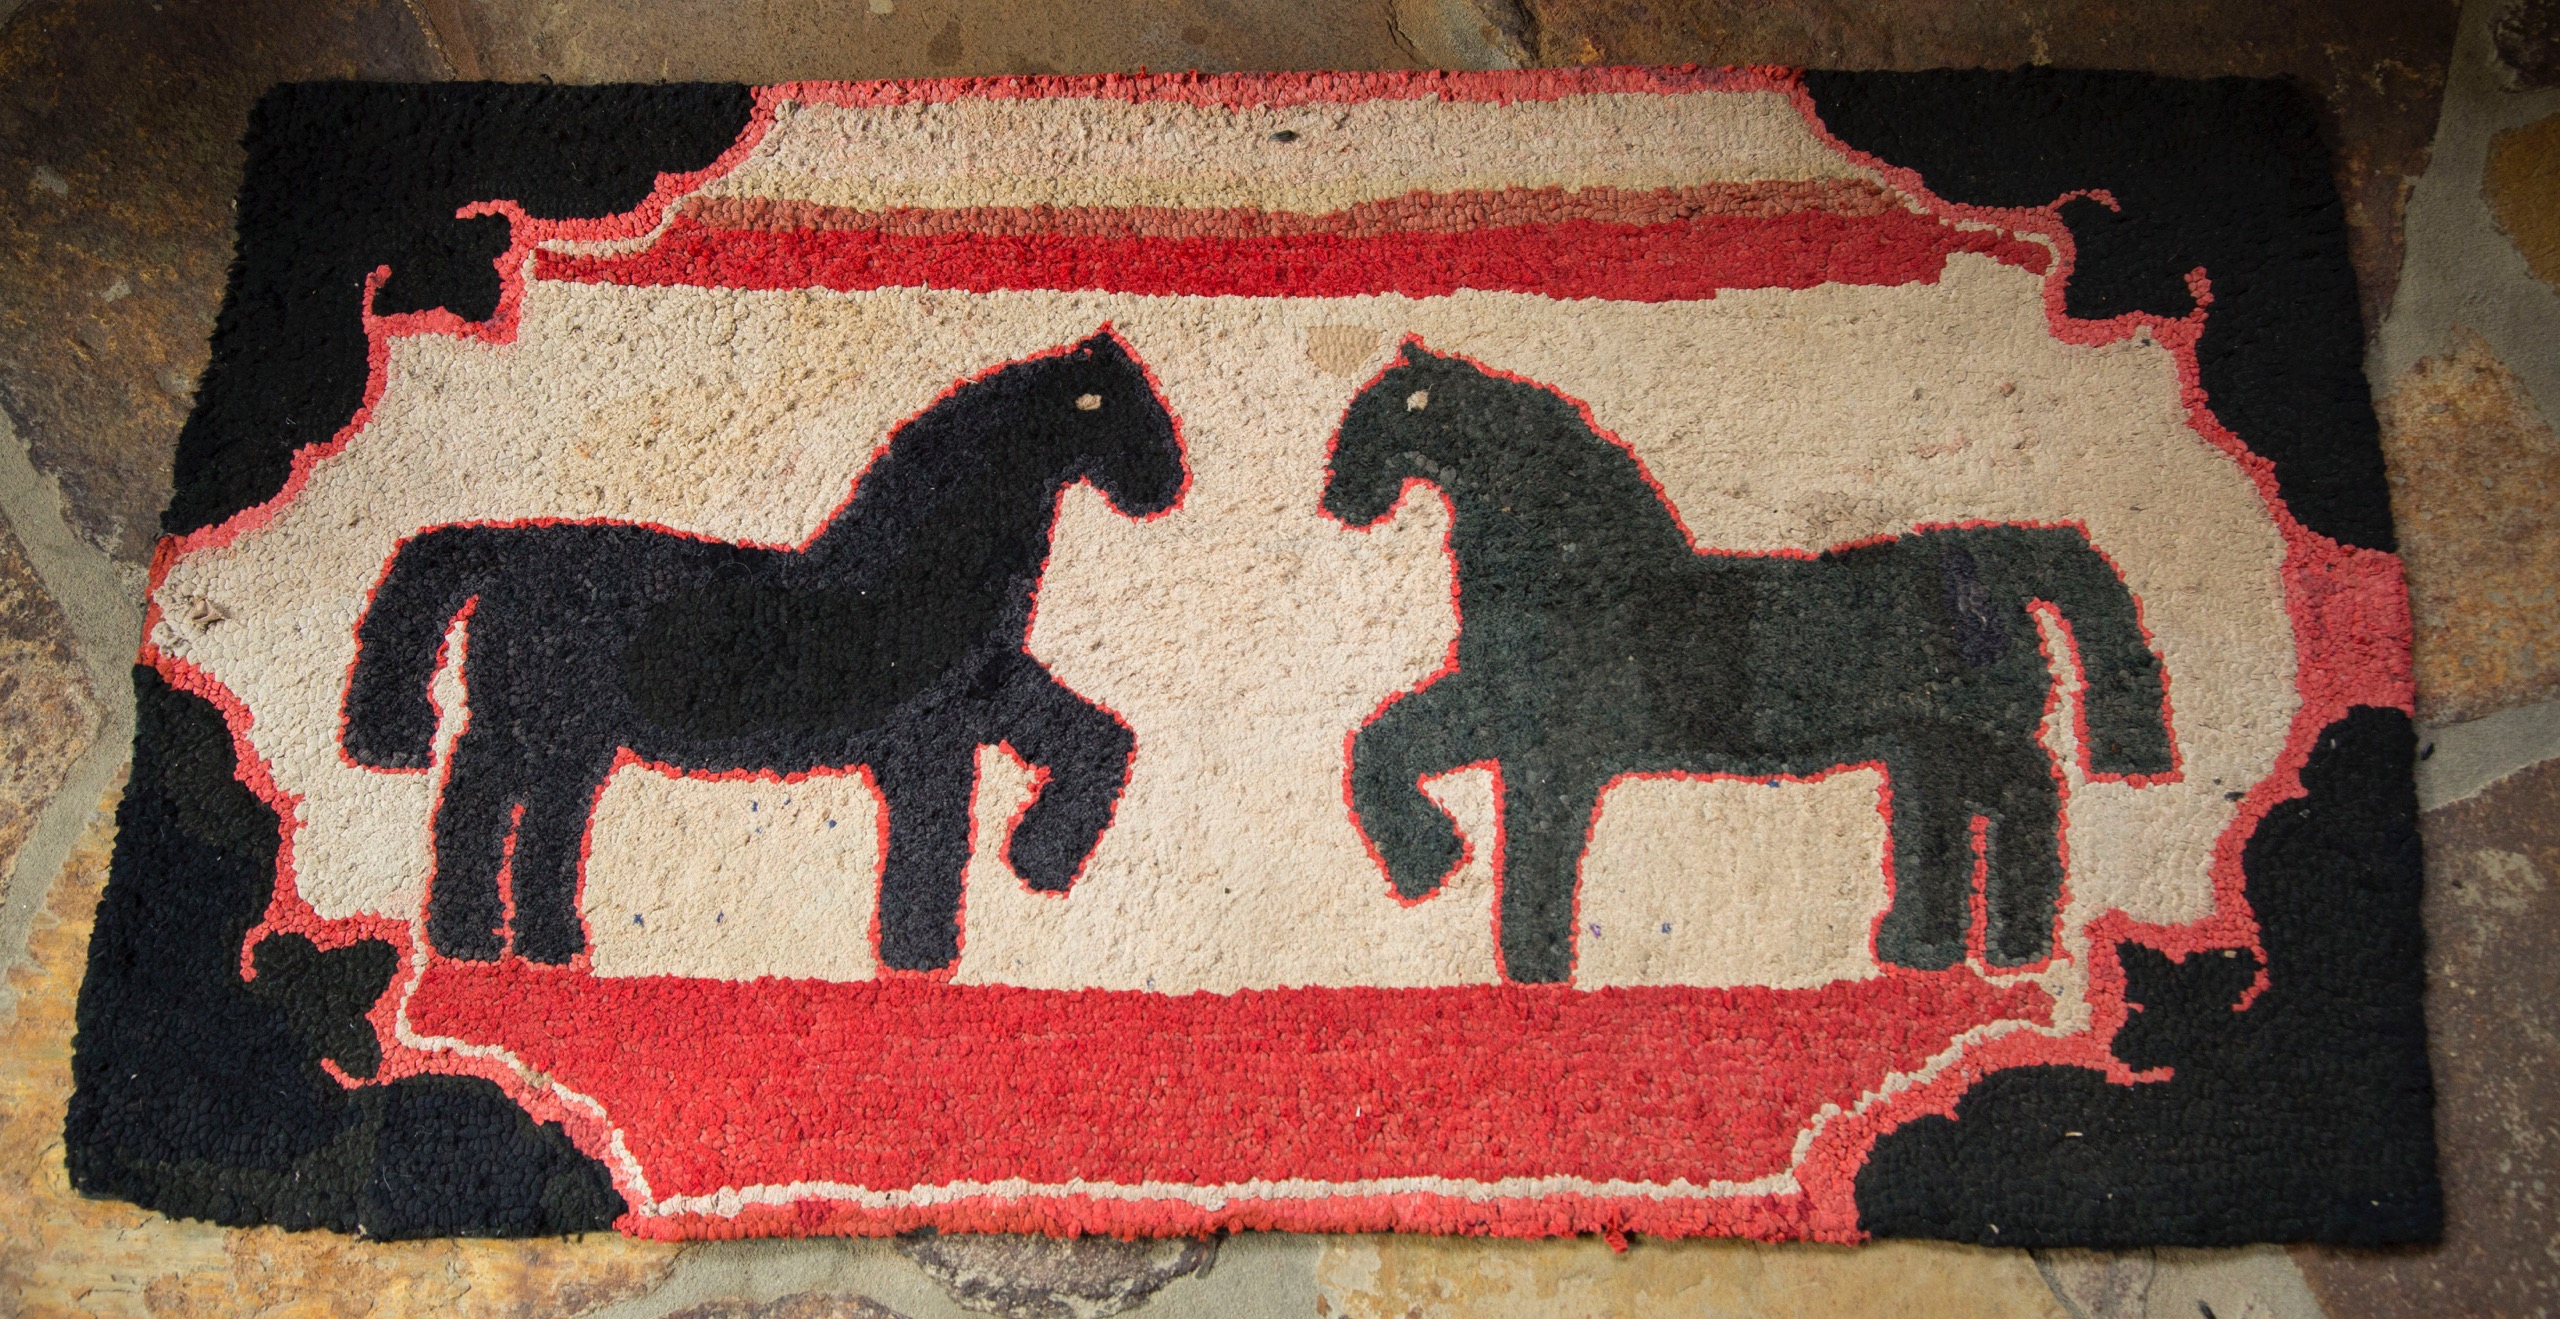 Early rag rugs like this one of a horse-to-horse greeting are better preserved as wall hangings rather than displayed underfoot